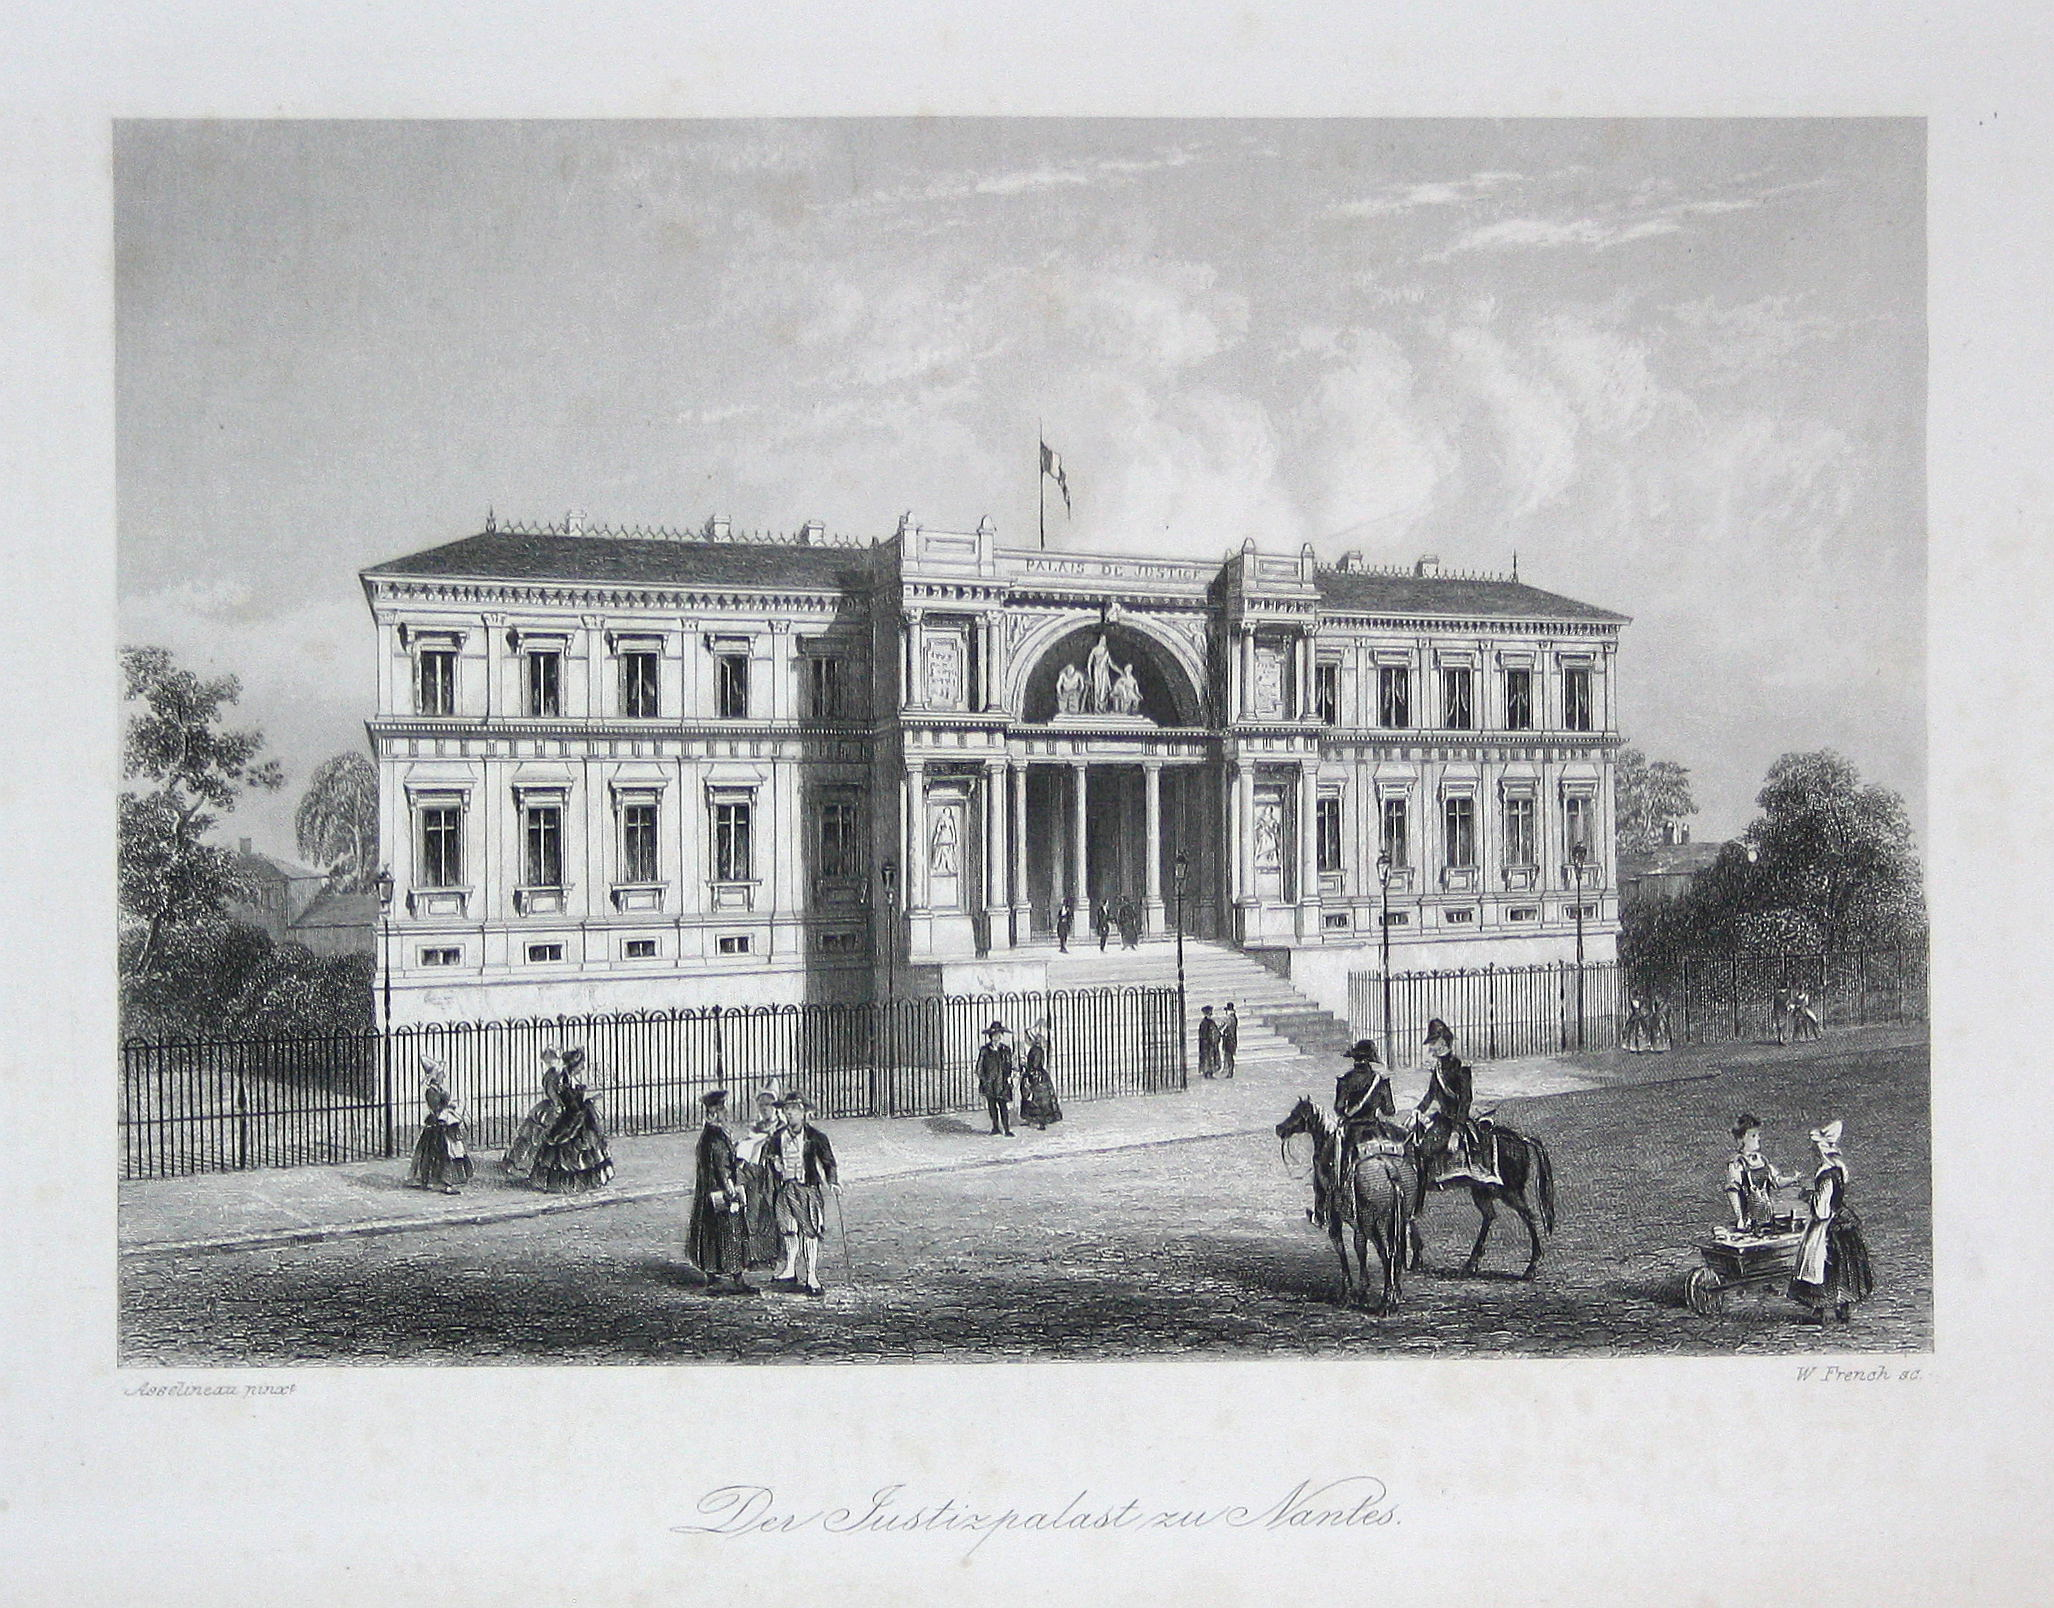 """Der Justizpalast zu Nantes"" - Nantes Justizpalast Justiz Frankreich France Stahlstich steel engraving Asselineau French"